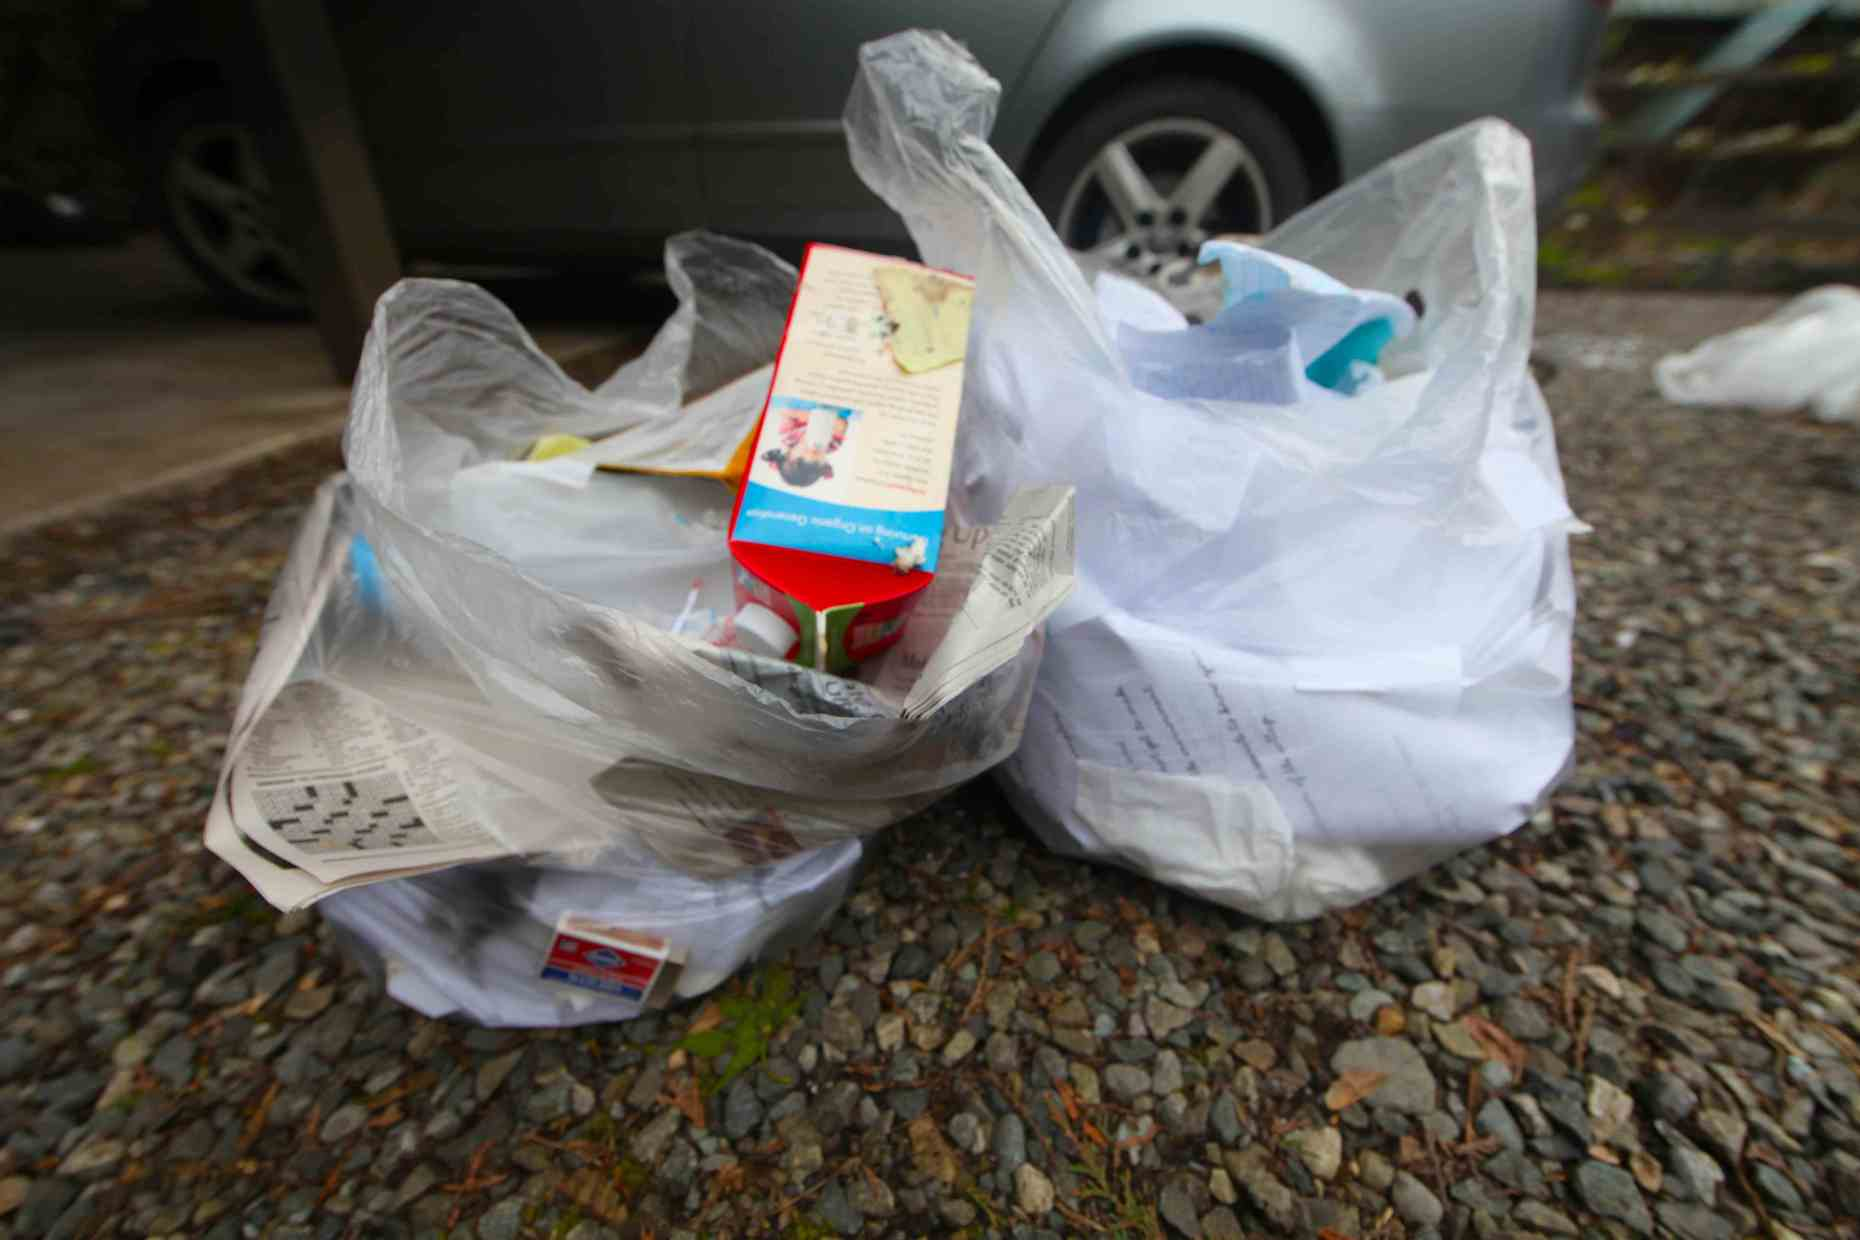 We sorted 2 bags'-worth of recyclables out of the landfill-bound trash.